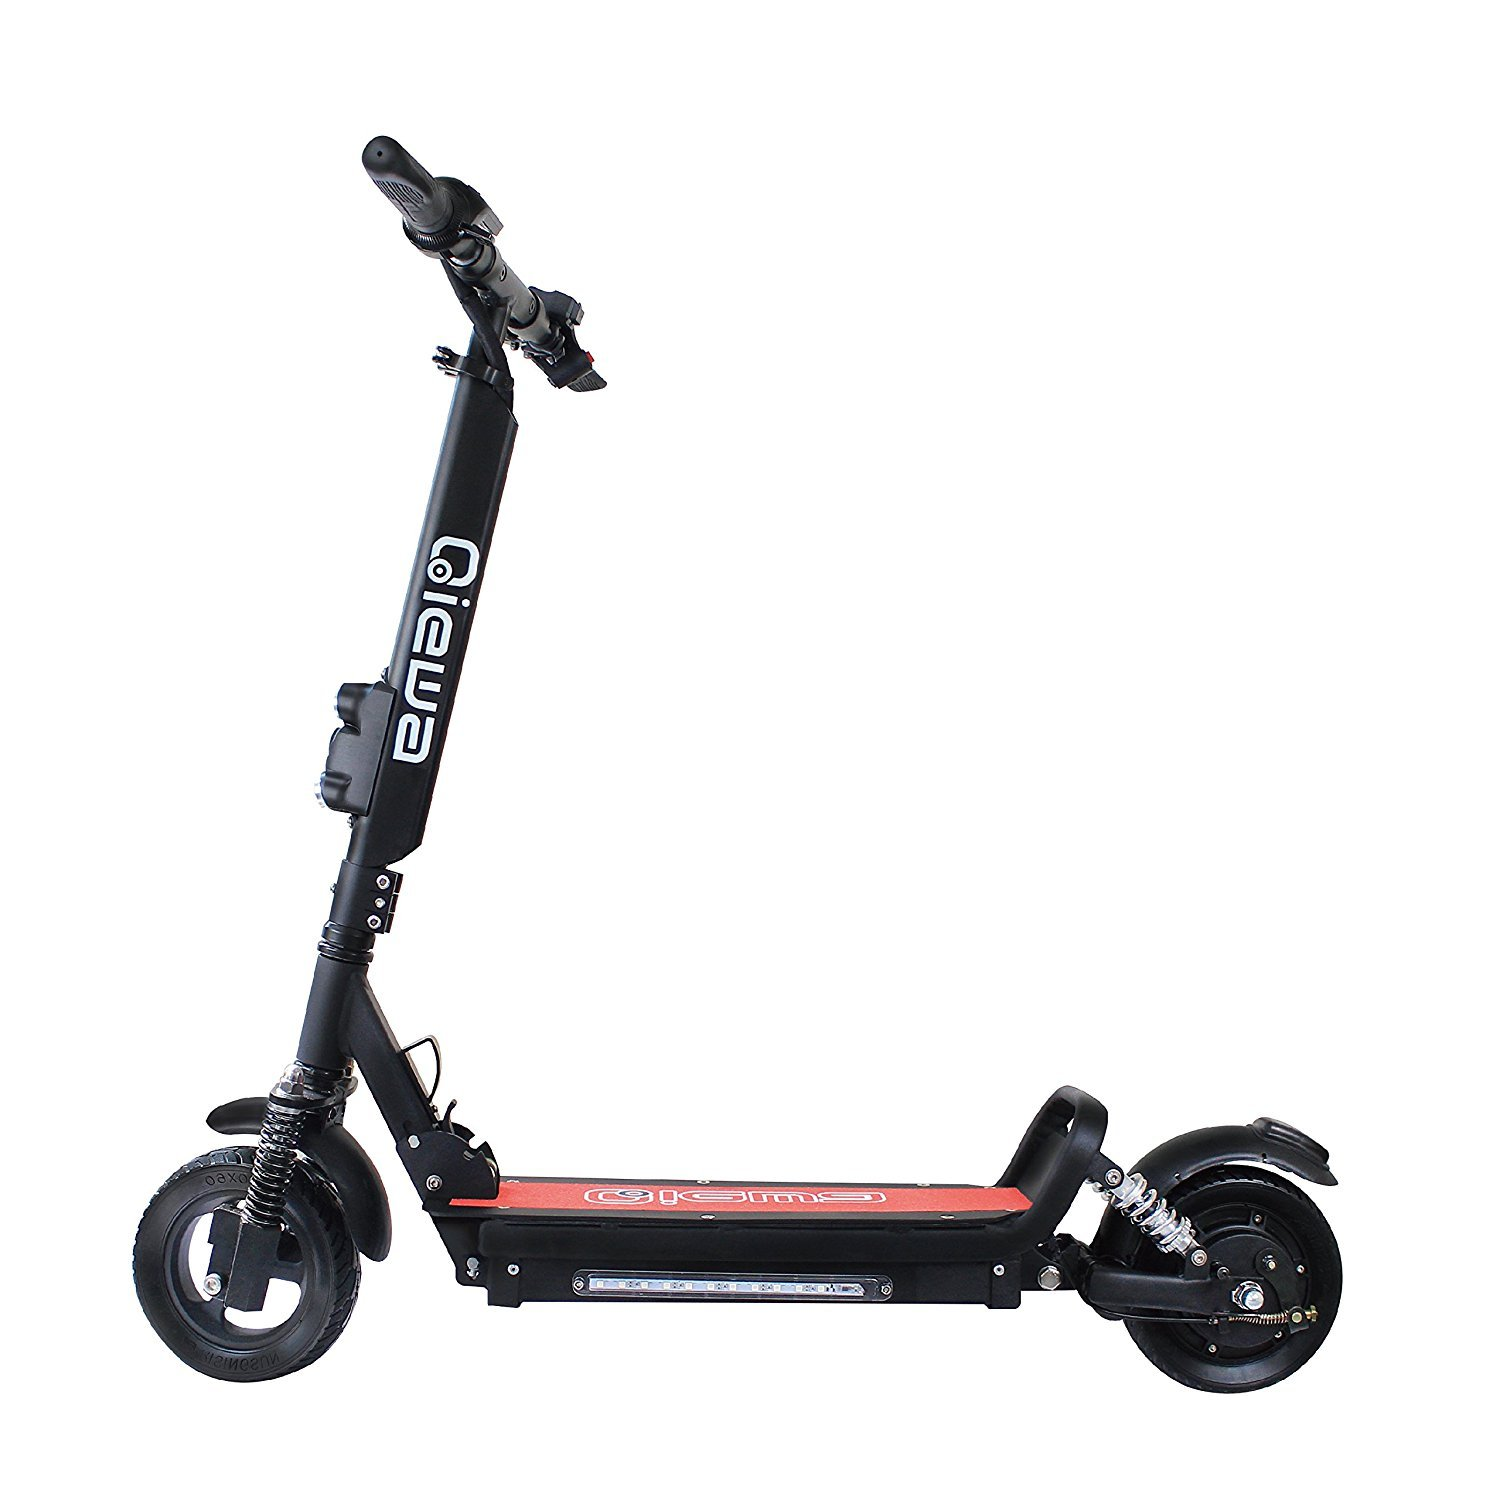 Qiewa Qmini Electric Scooter with 45 degree dual shock 12cm ...